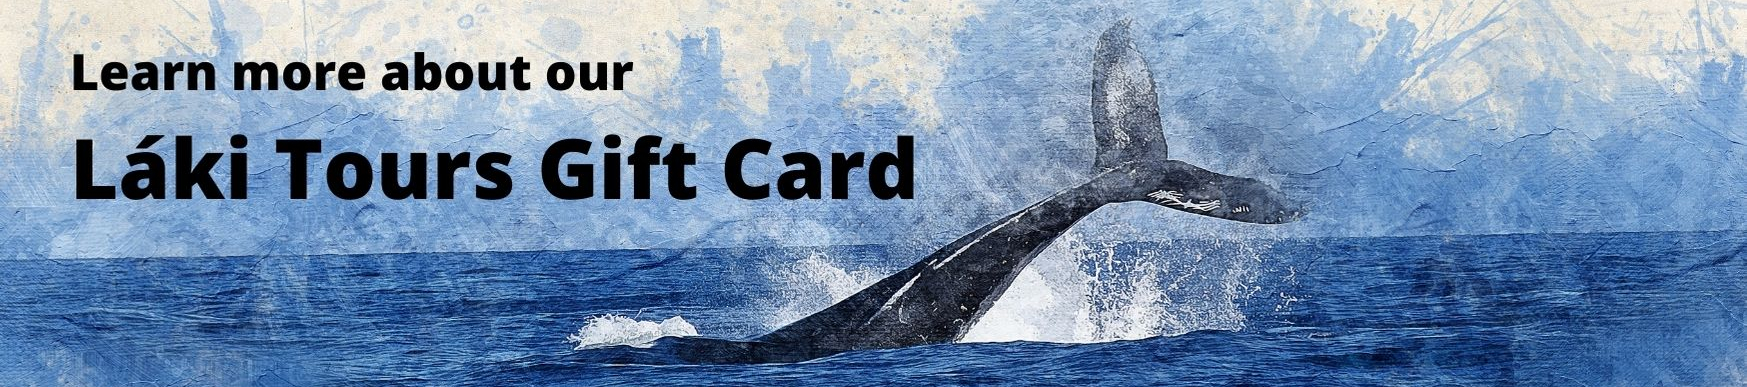 Láki Tours Iceland Gift Card Whale Watching